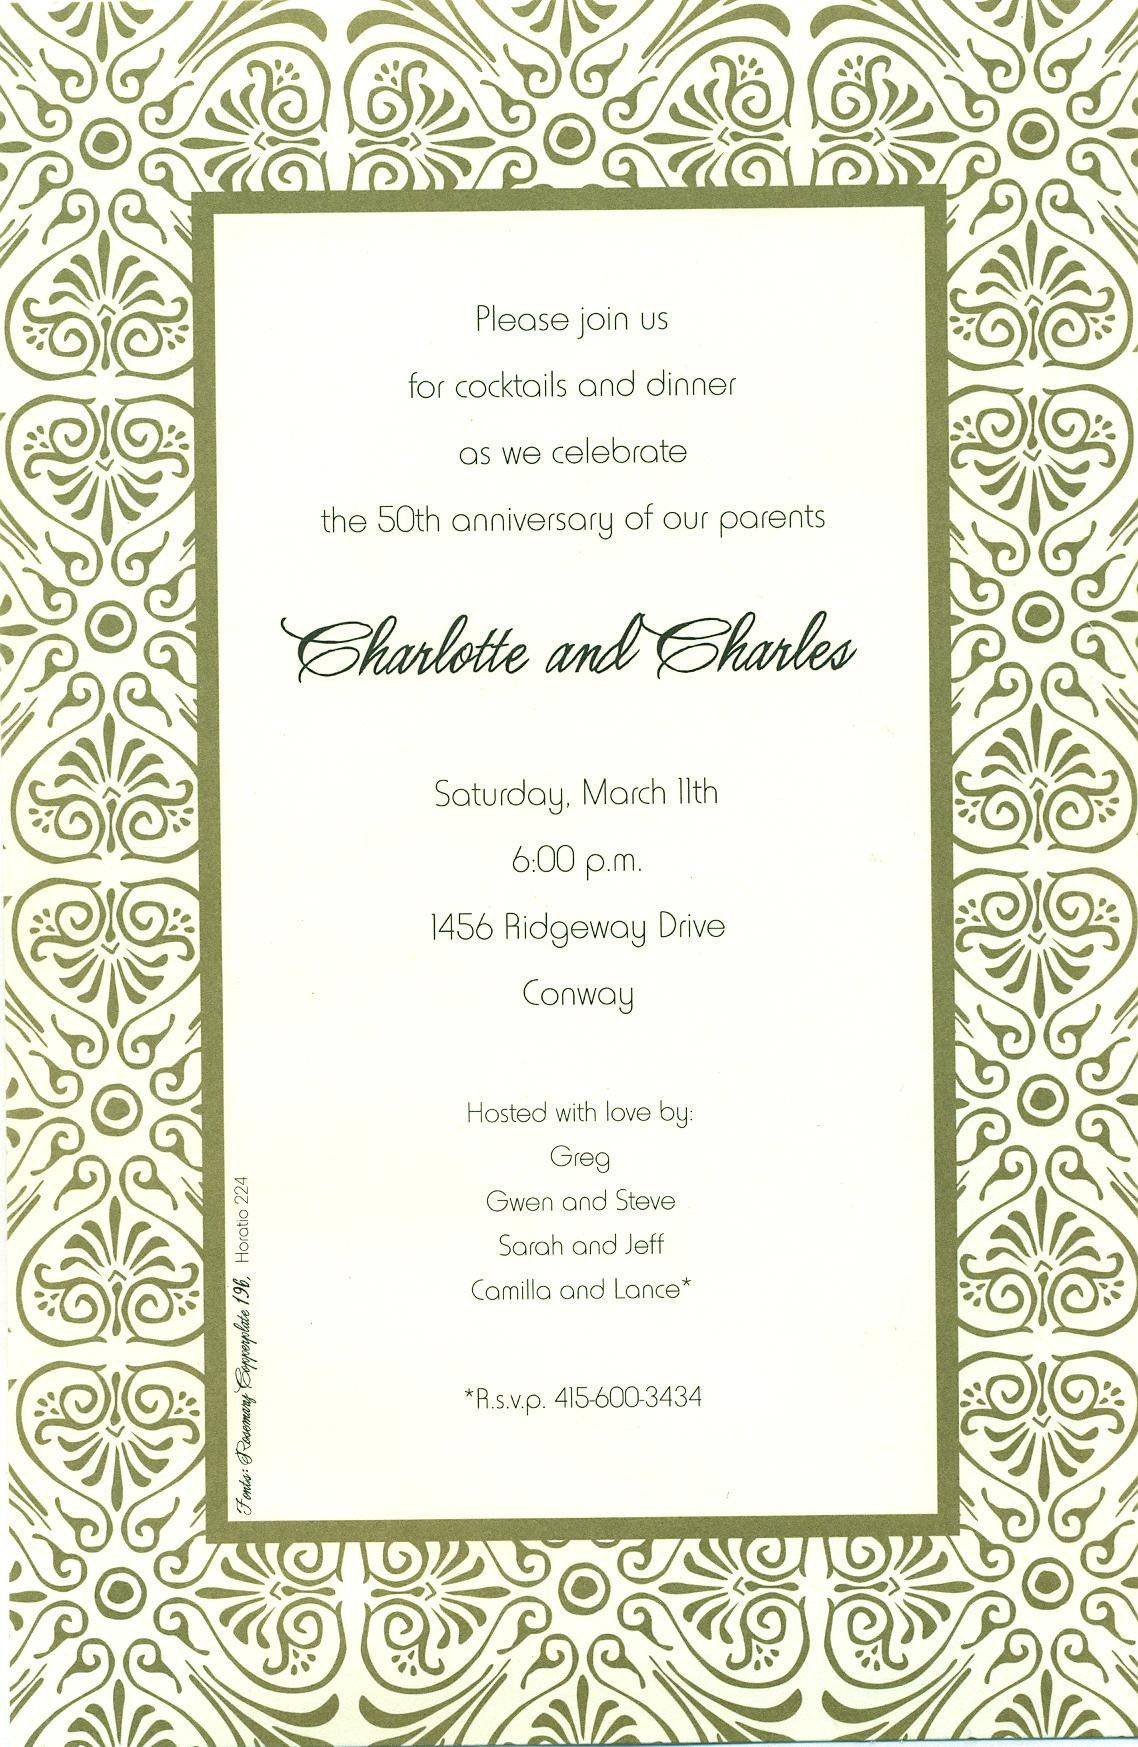 Downloadable Invitation Templates